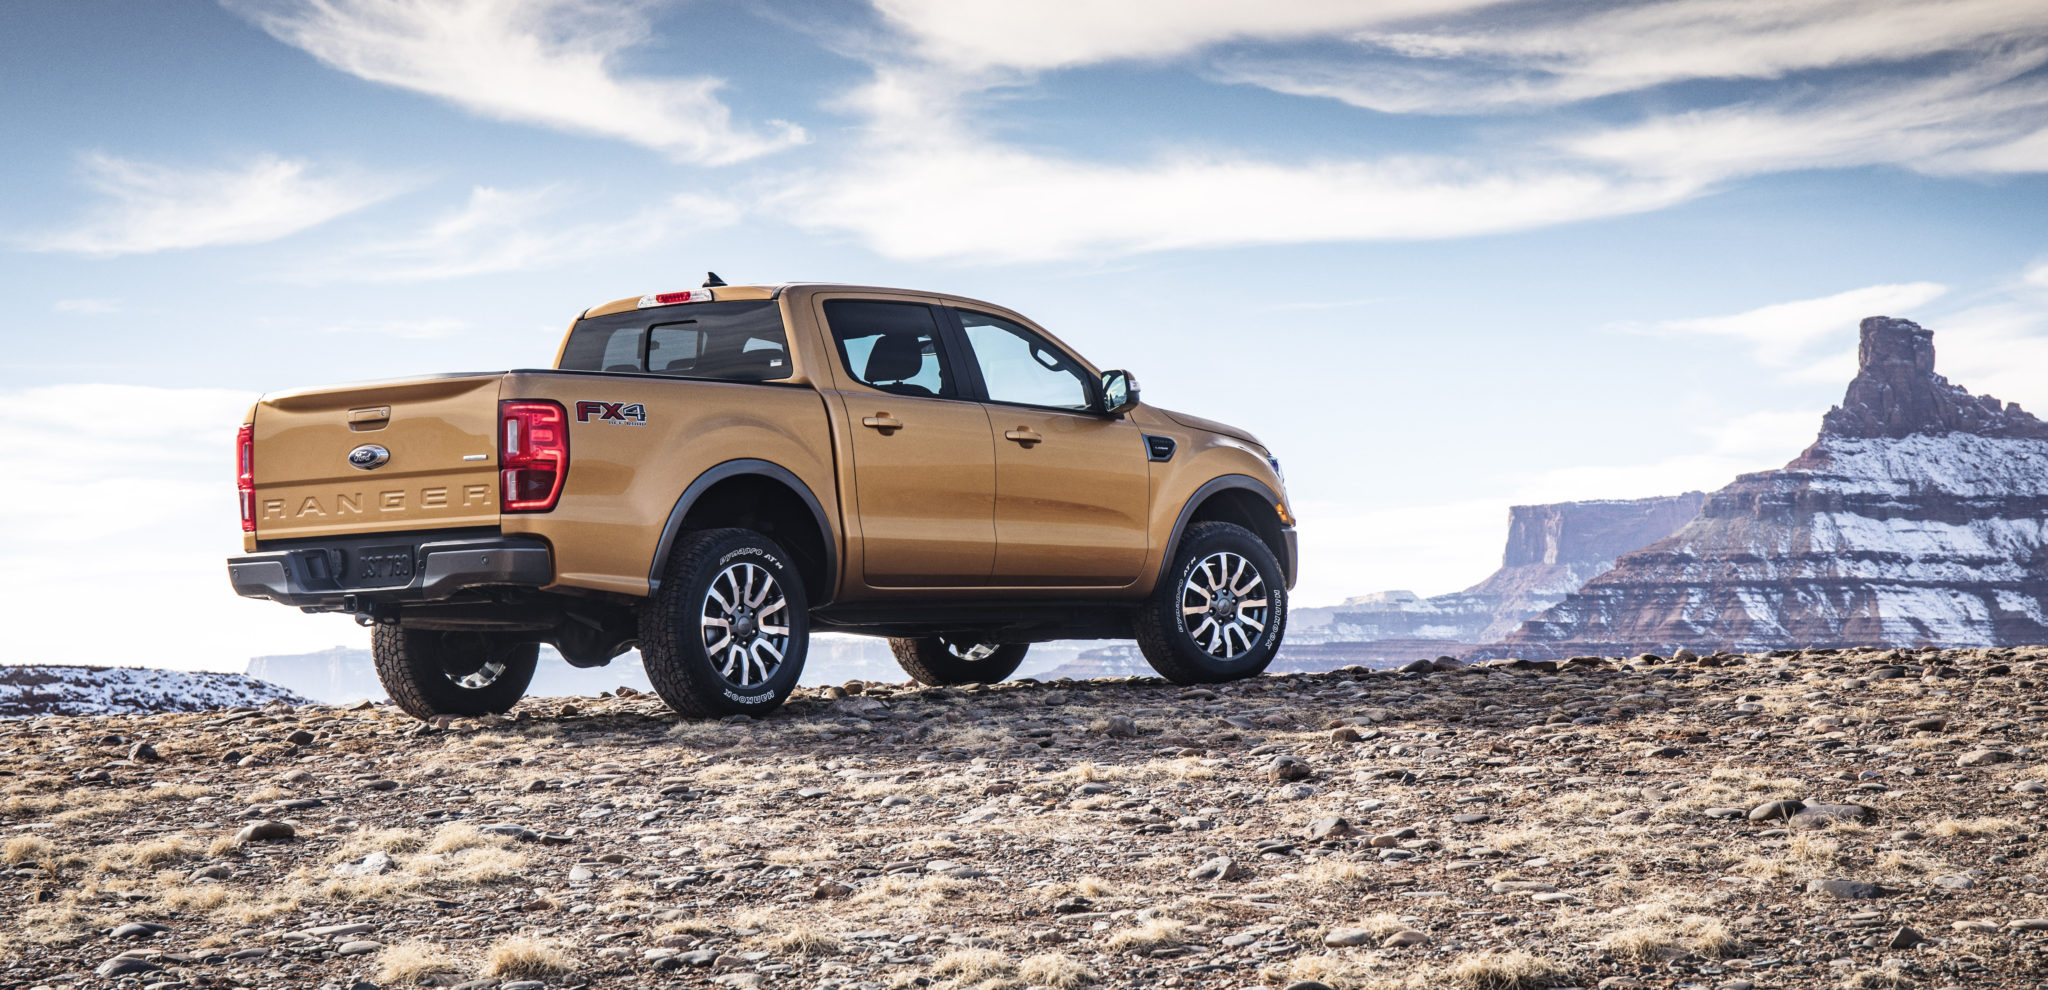 Ford shows off the new ranger and it may be perfect for small rv towing rv miles